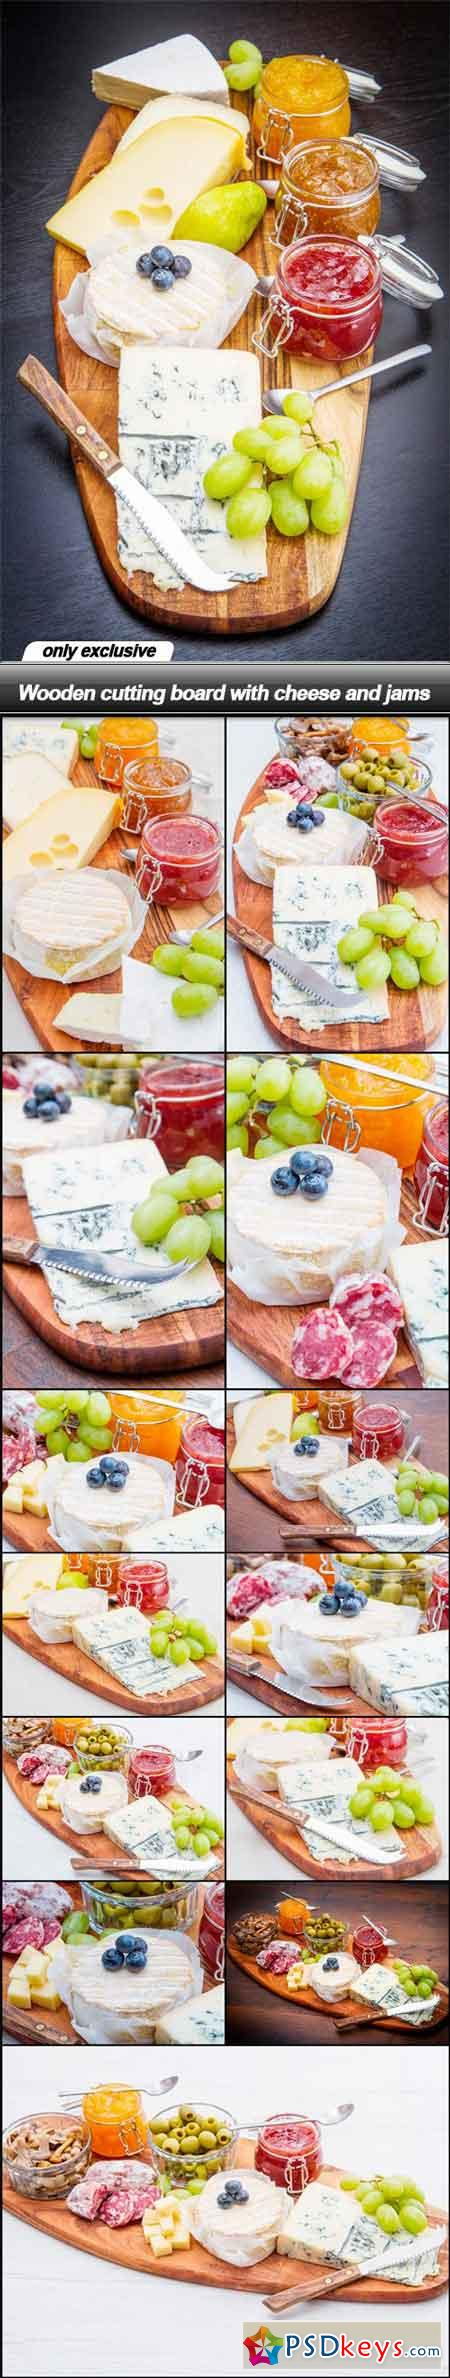 Wooden cutting board with cheese and jams - 14 UHQ JPEG